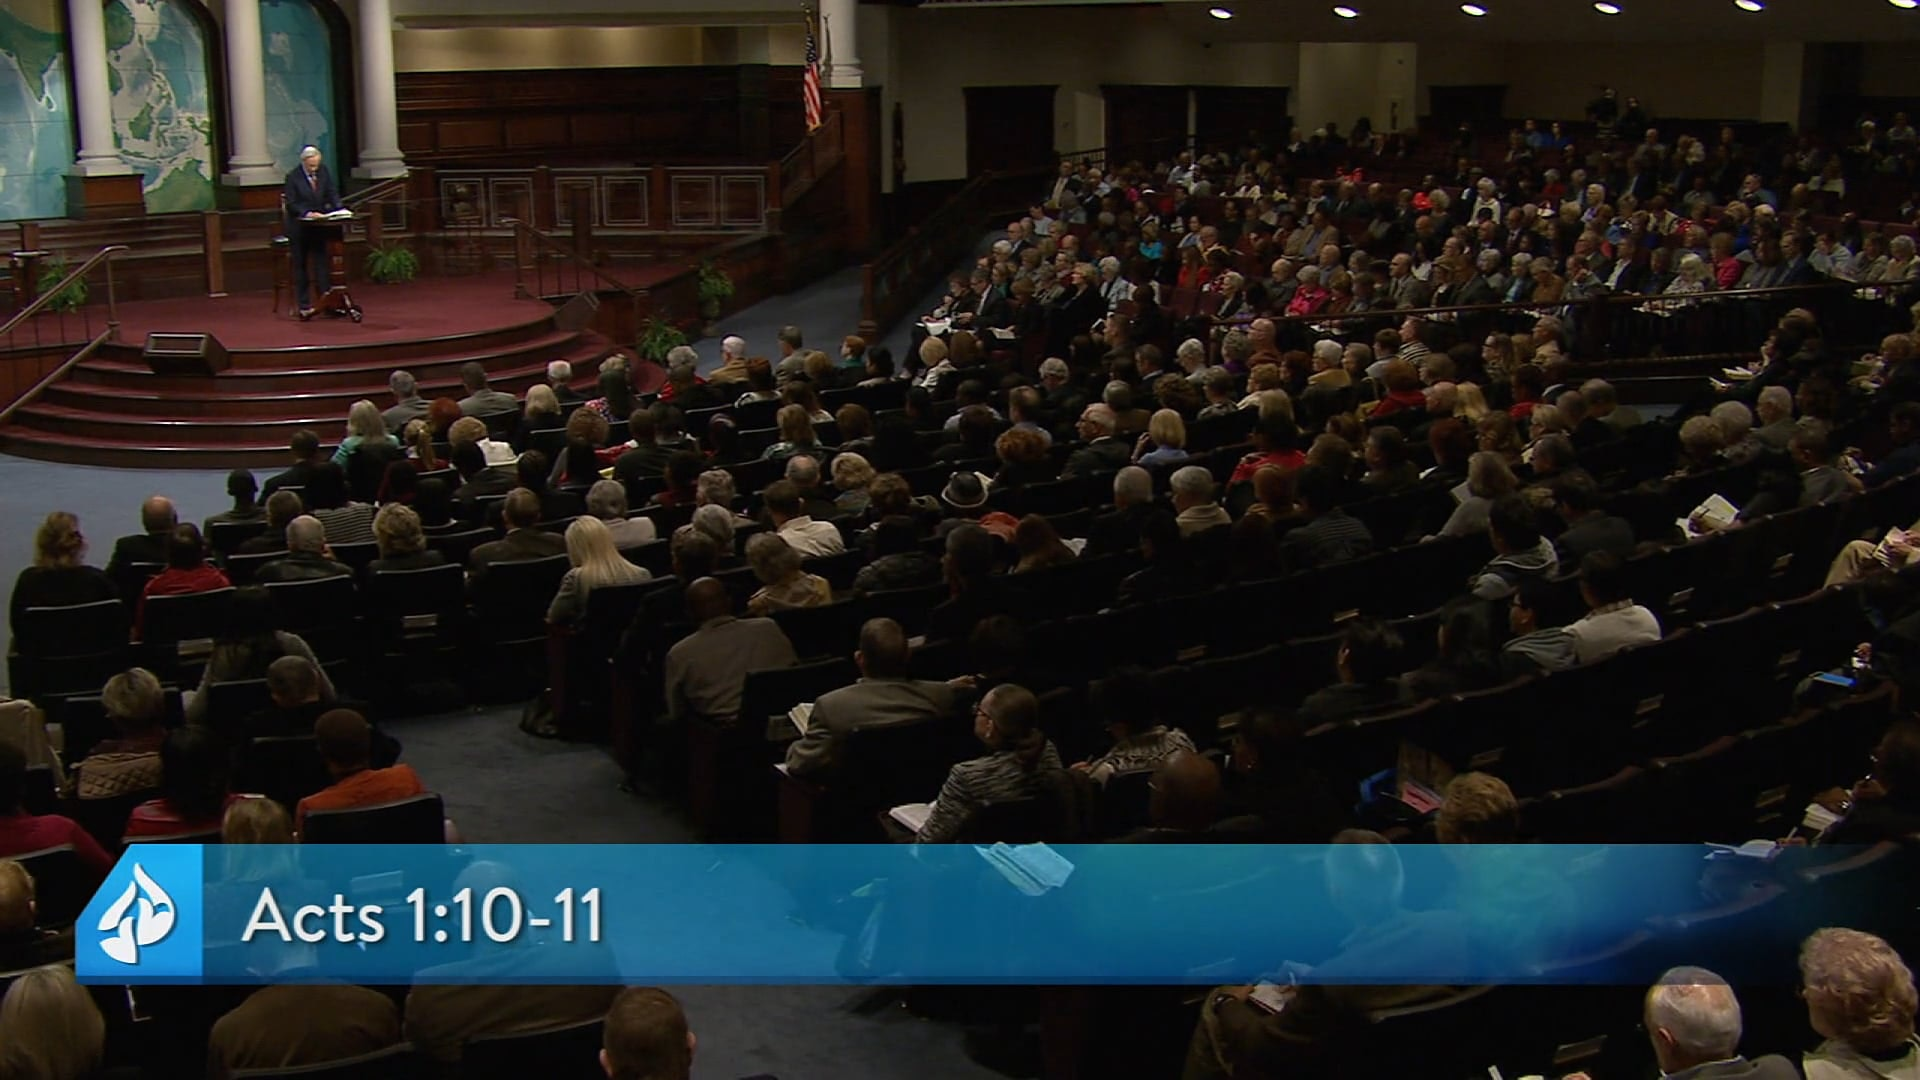 Watch The Convictions by Which We Live: Your Convictions About Heaven